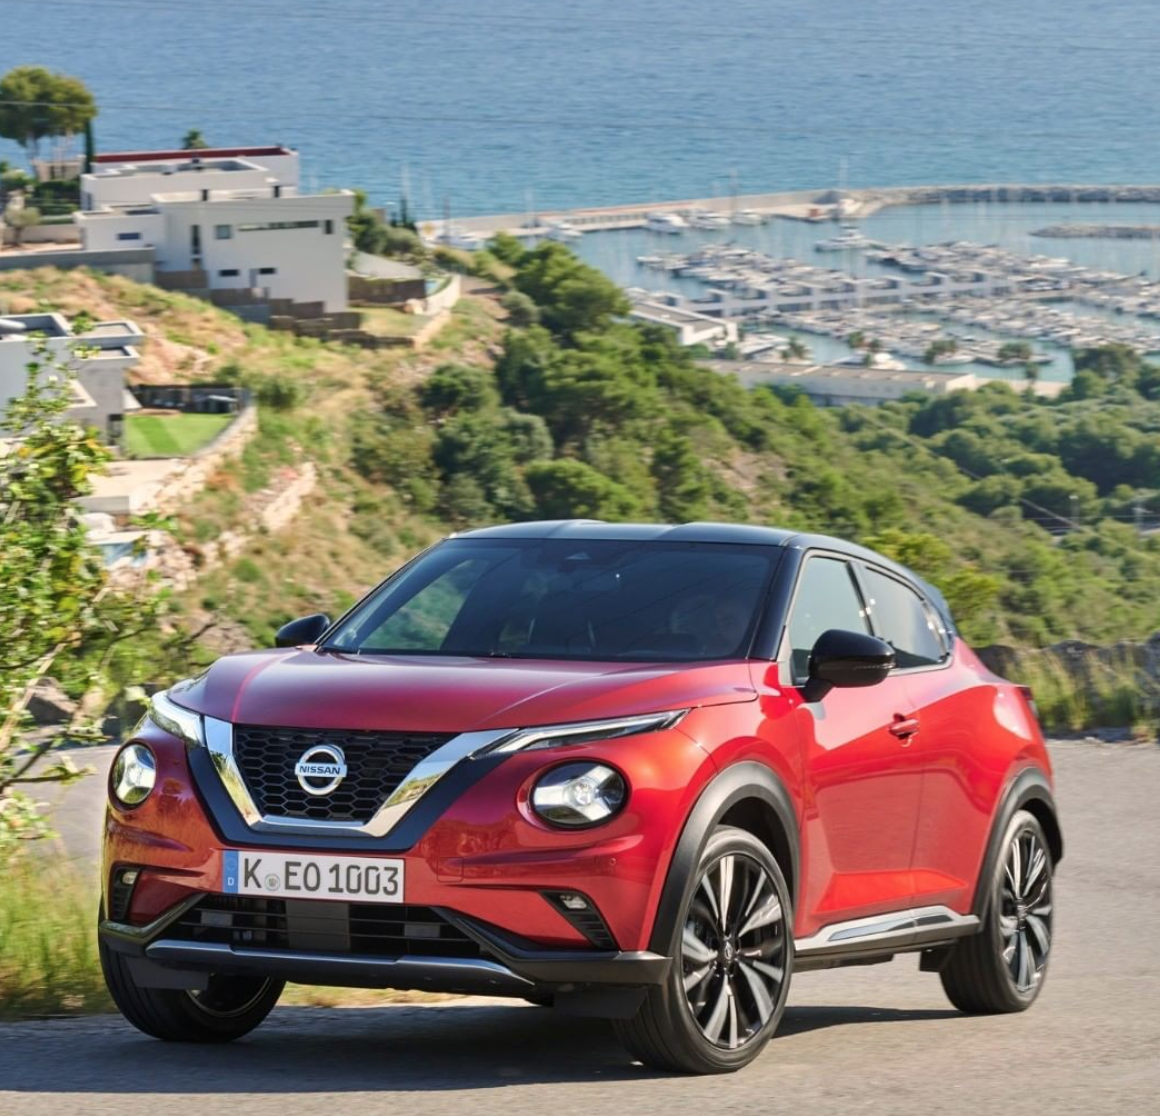 Pin By Arashmirza On نیسان جوک In 2020 With Images Nissan Juke